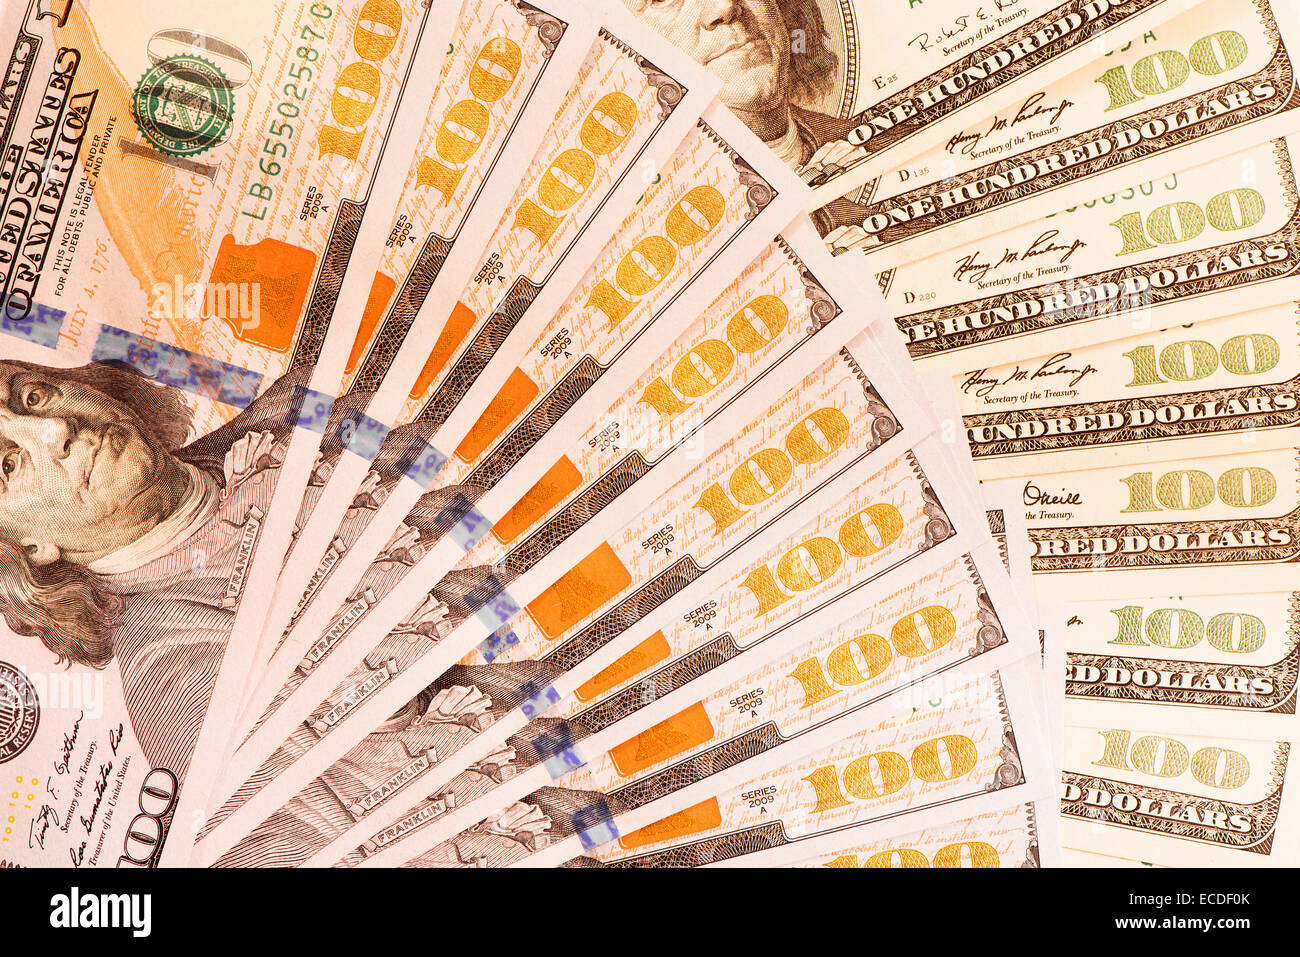 nordamerikanische hundert dollar banknoten hintergrund stockfoto bild 76514499 alamy. Black Bedroom Furniture Sets. Home Design Ideas